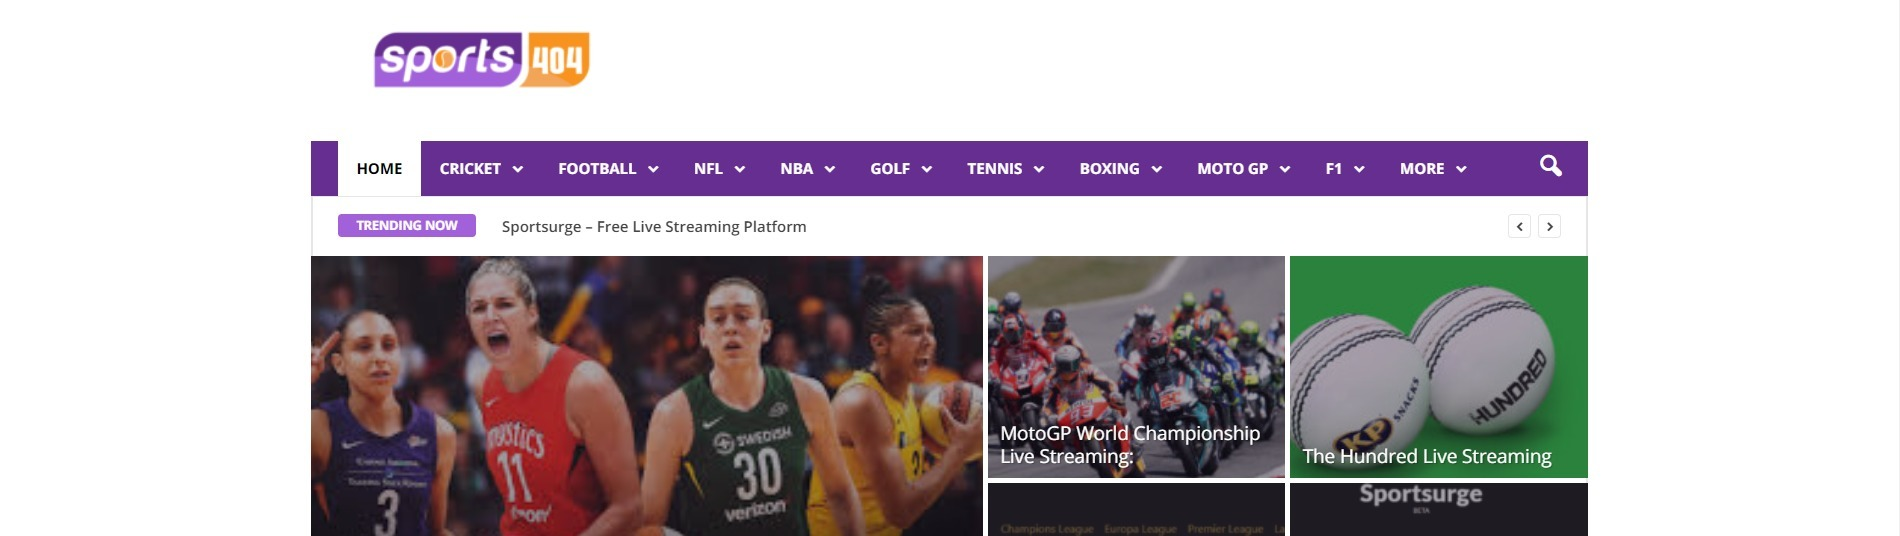 (@sports404) Cover Image